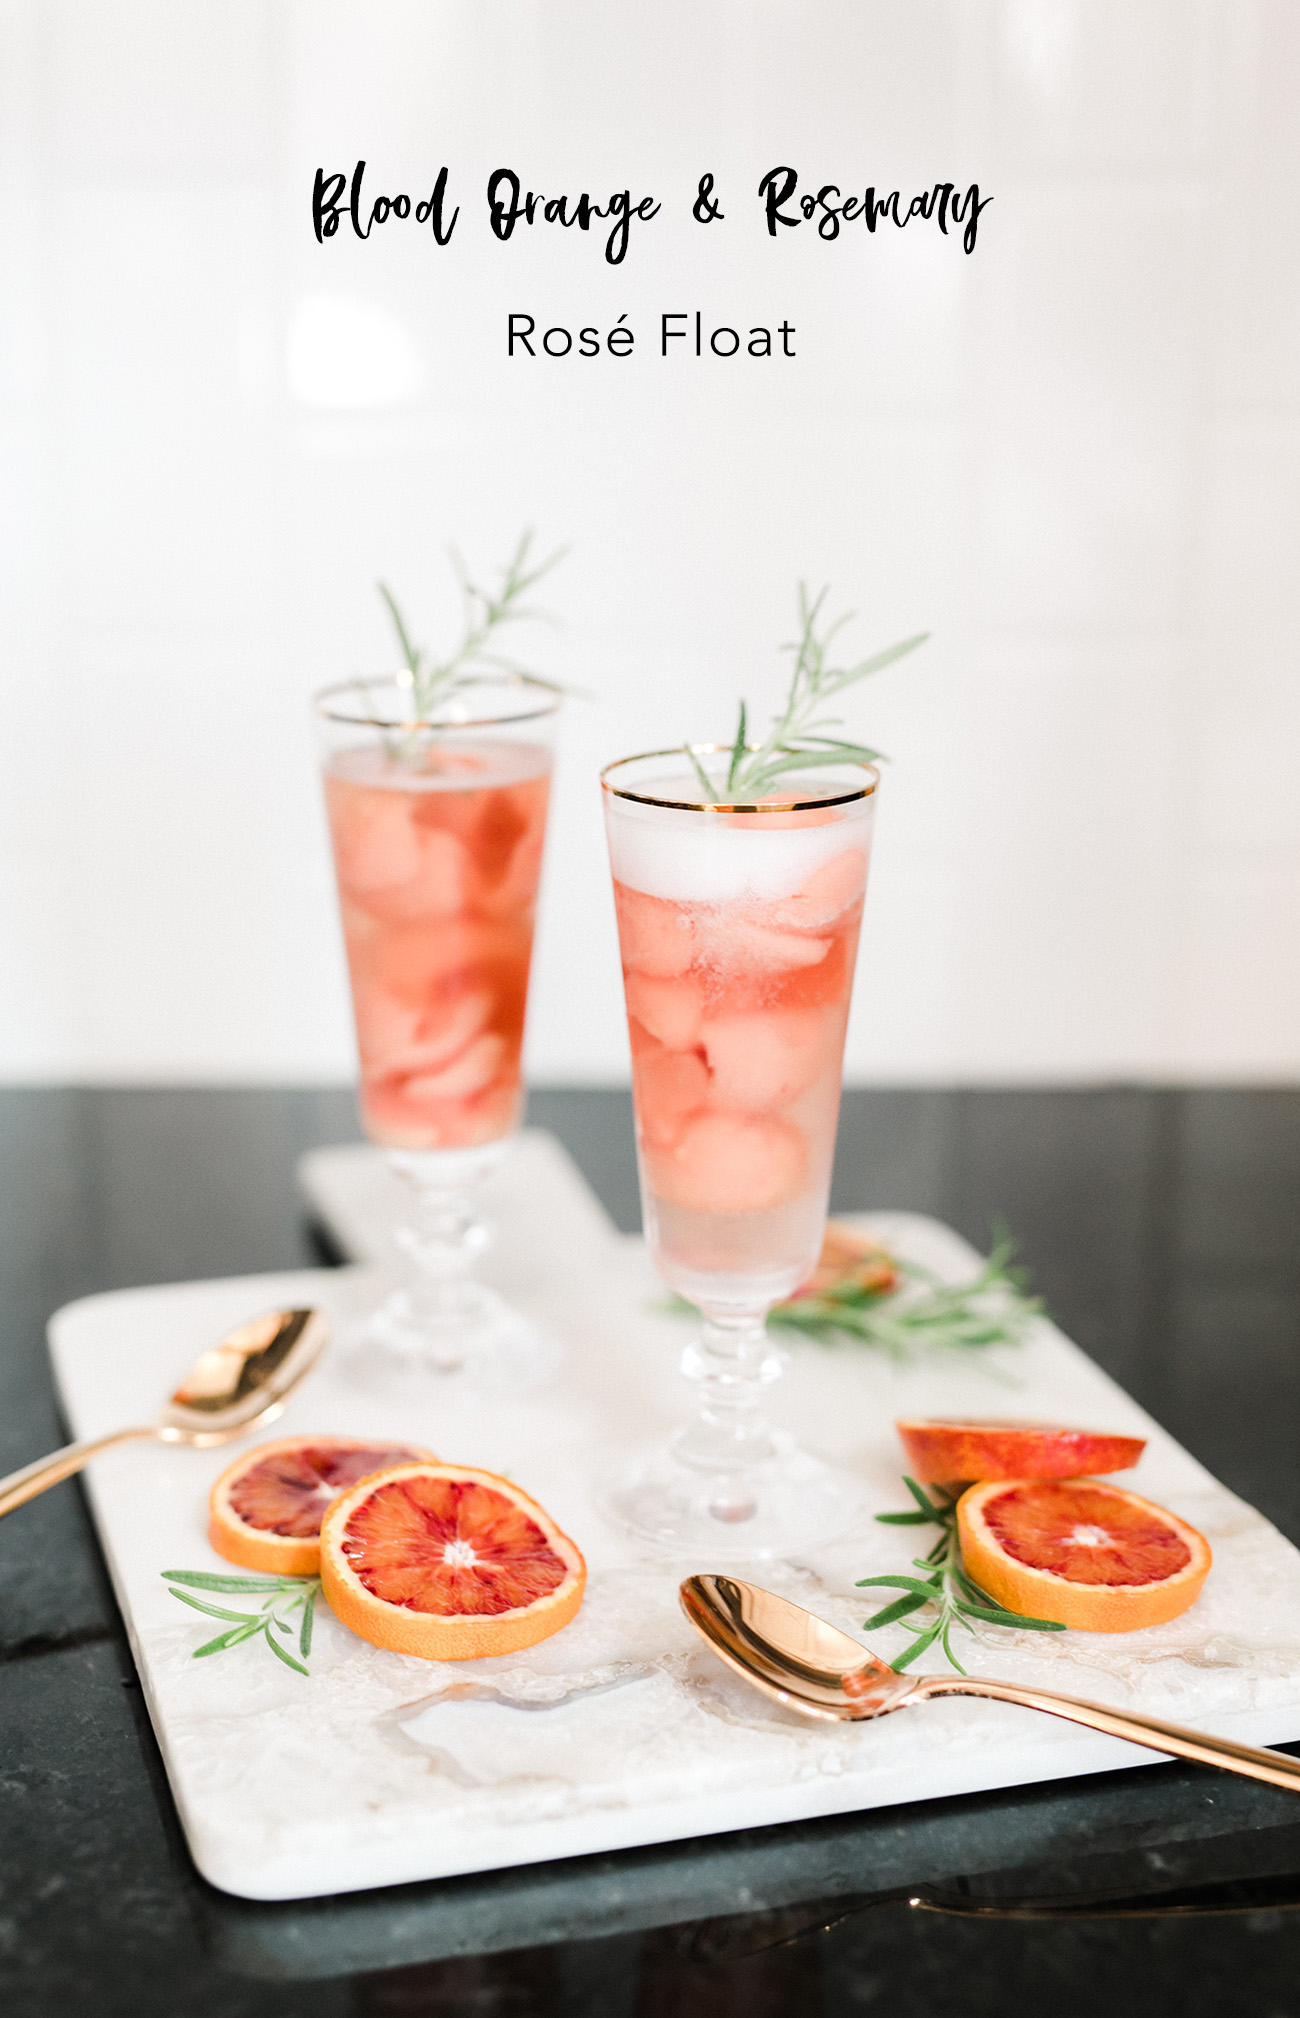 Rose Float with Blood Orange and Rosemary Recipe